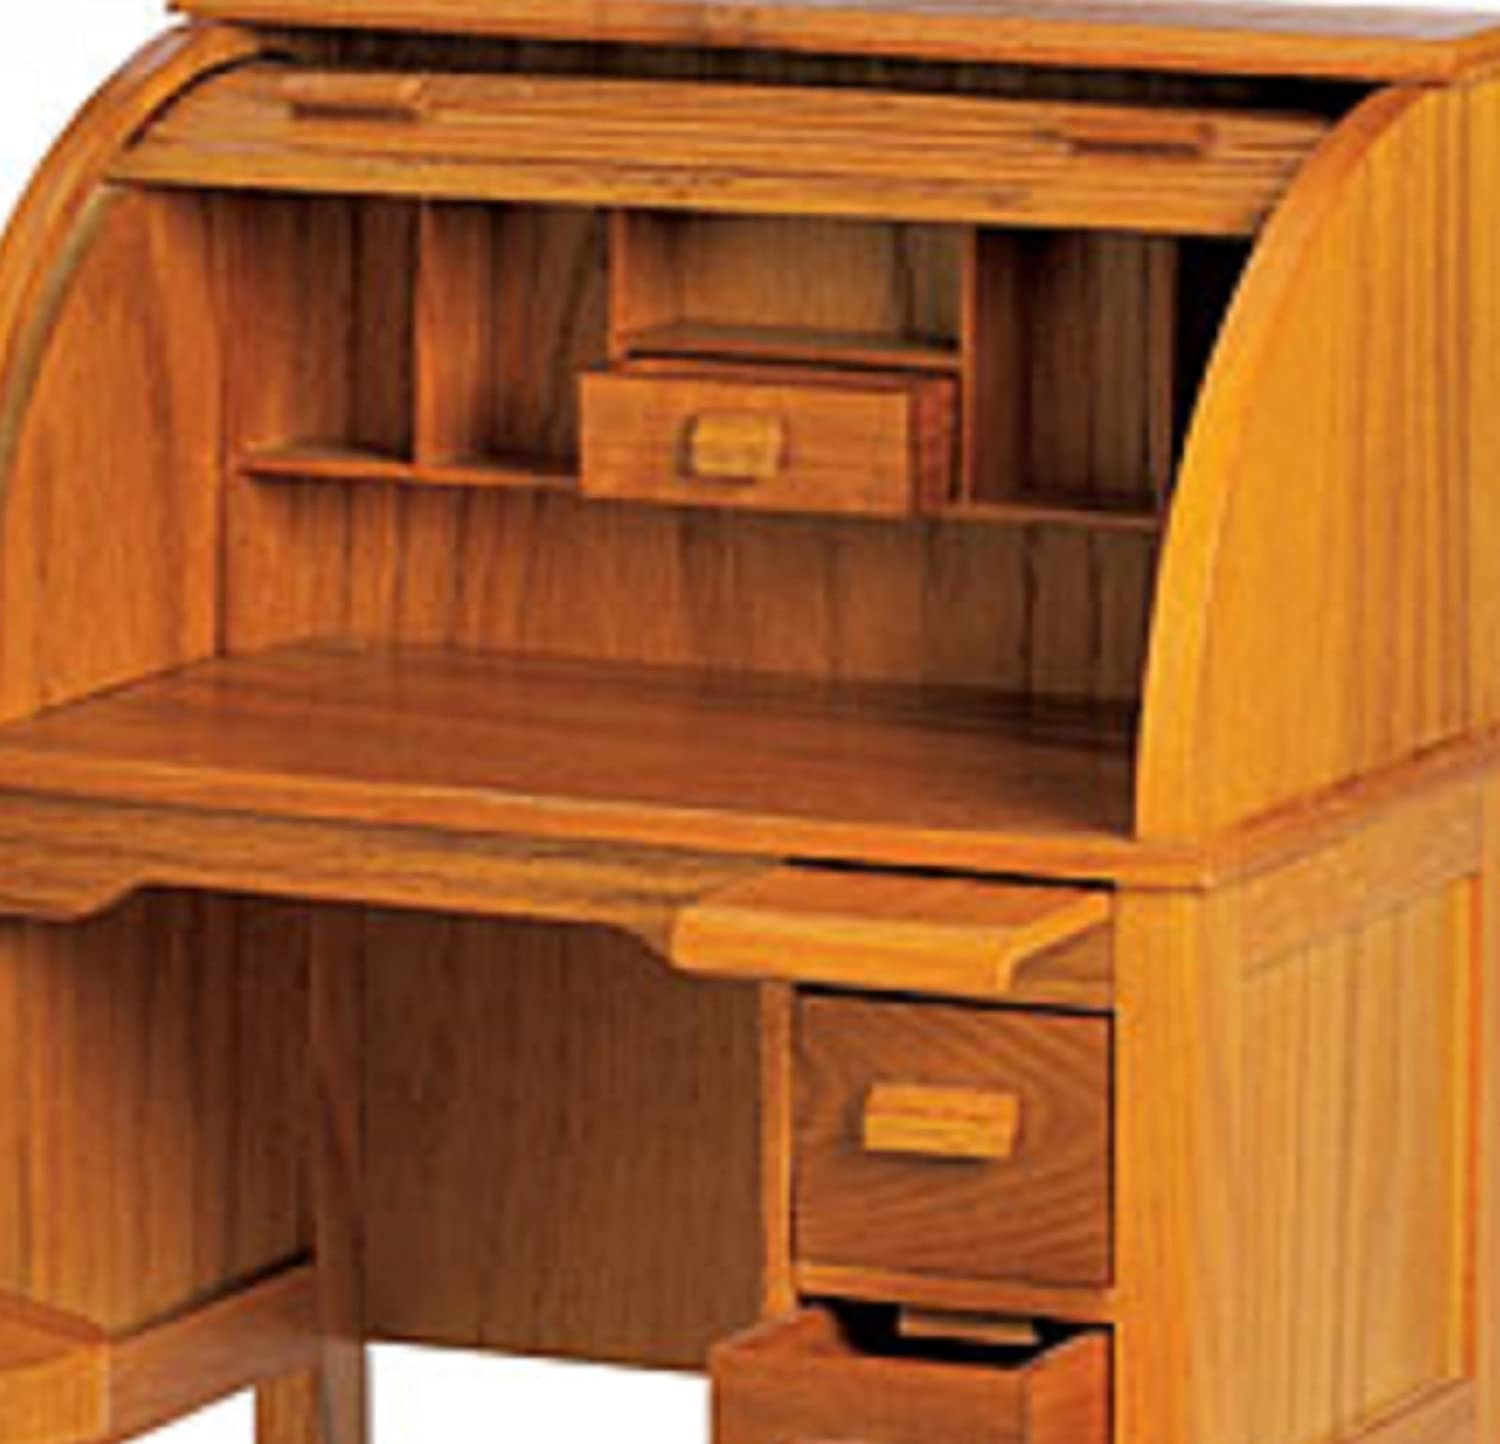 Amazon American Girl Kit s Wooden School Desk and Chair Toys